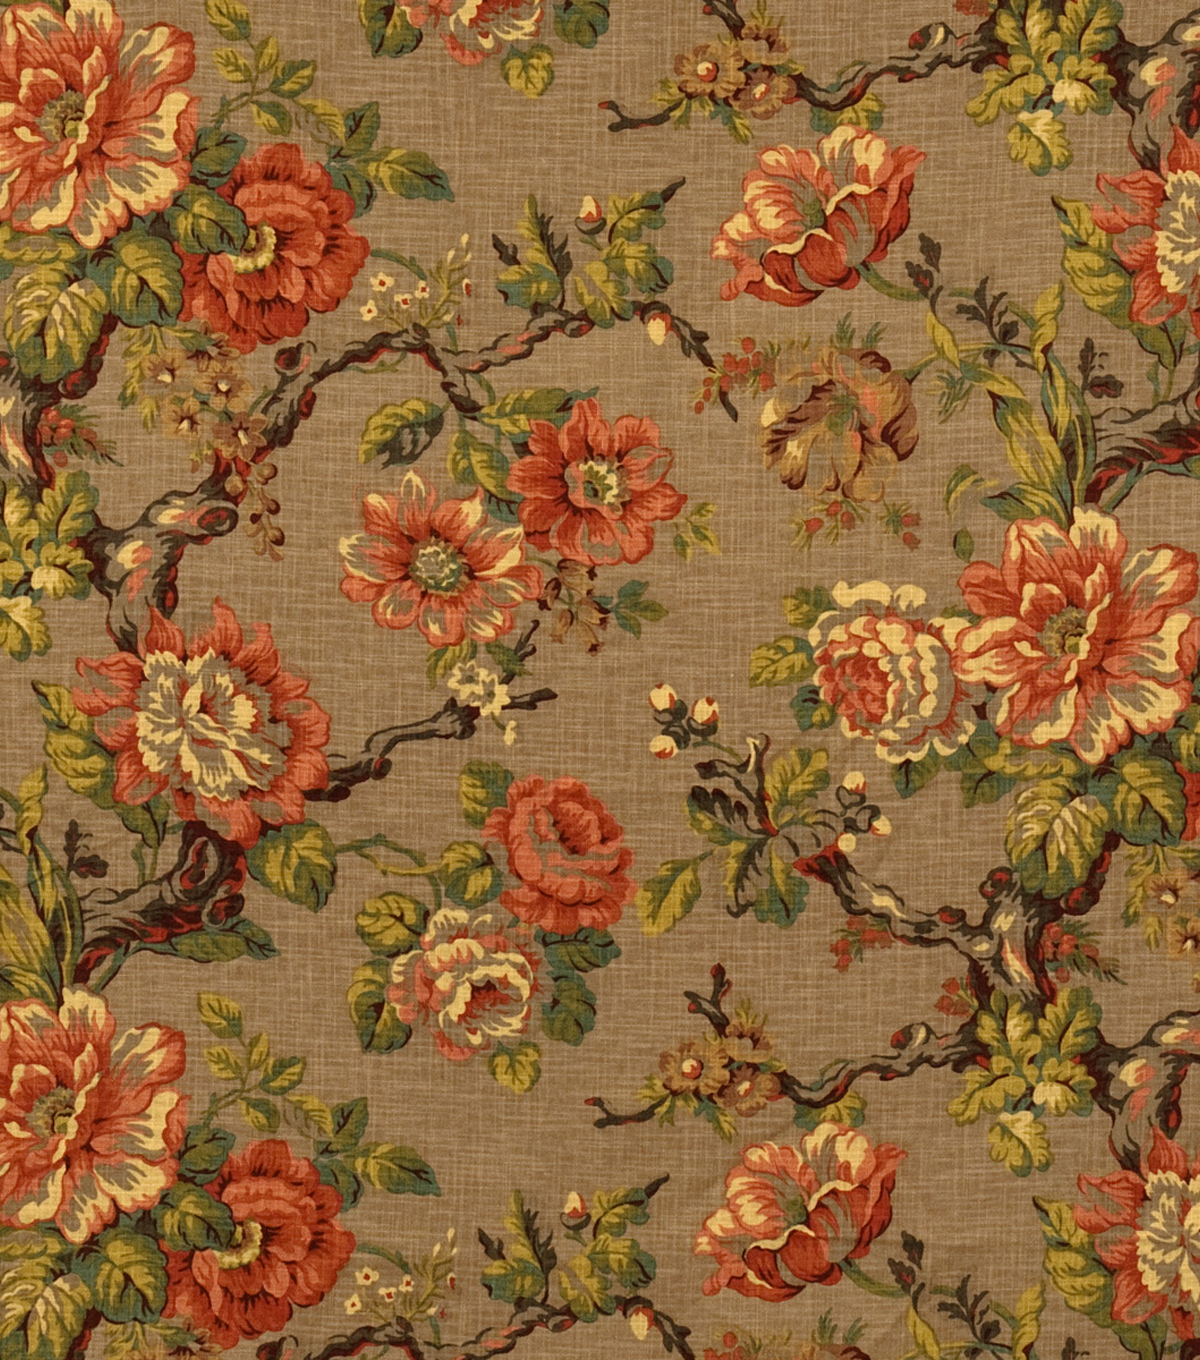 Home Decor 8\u0022x8\u0022 Fabric Swatch-Jaclyn Smith Halo-Caramel